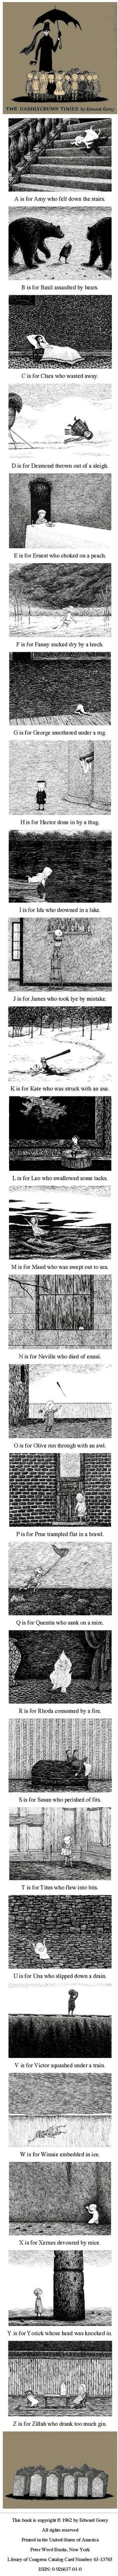 """The Gashlycrumb Tinies, by Edward Gorey (pub.1963) ~ One of Gorey's best-known books, it has been described as a """"sarcastic rebellion against a view of childhood that is sunny, idyllic, and instructive"""". The morbid humor of the book comes in part from the mundane ways in which children die. Far from illustrating the dramatic and fantastical childhood nightmares, these scenarios instead poke fun at the banal paranoias that come as a part of parenting. #art #illustration"""